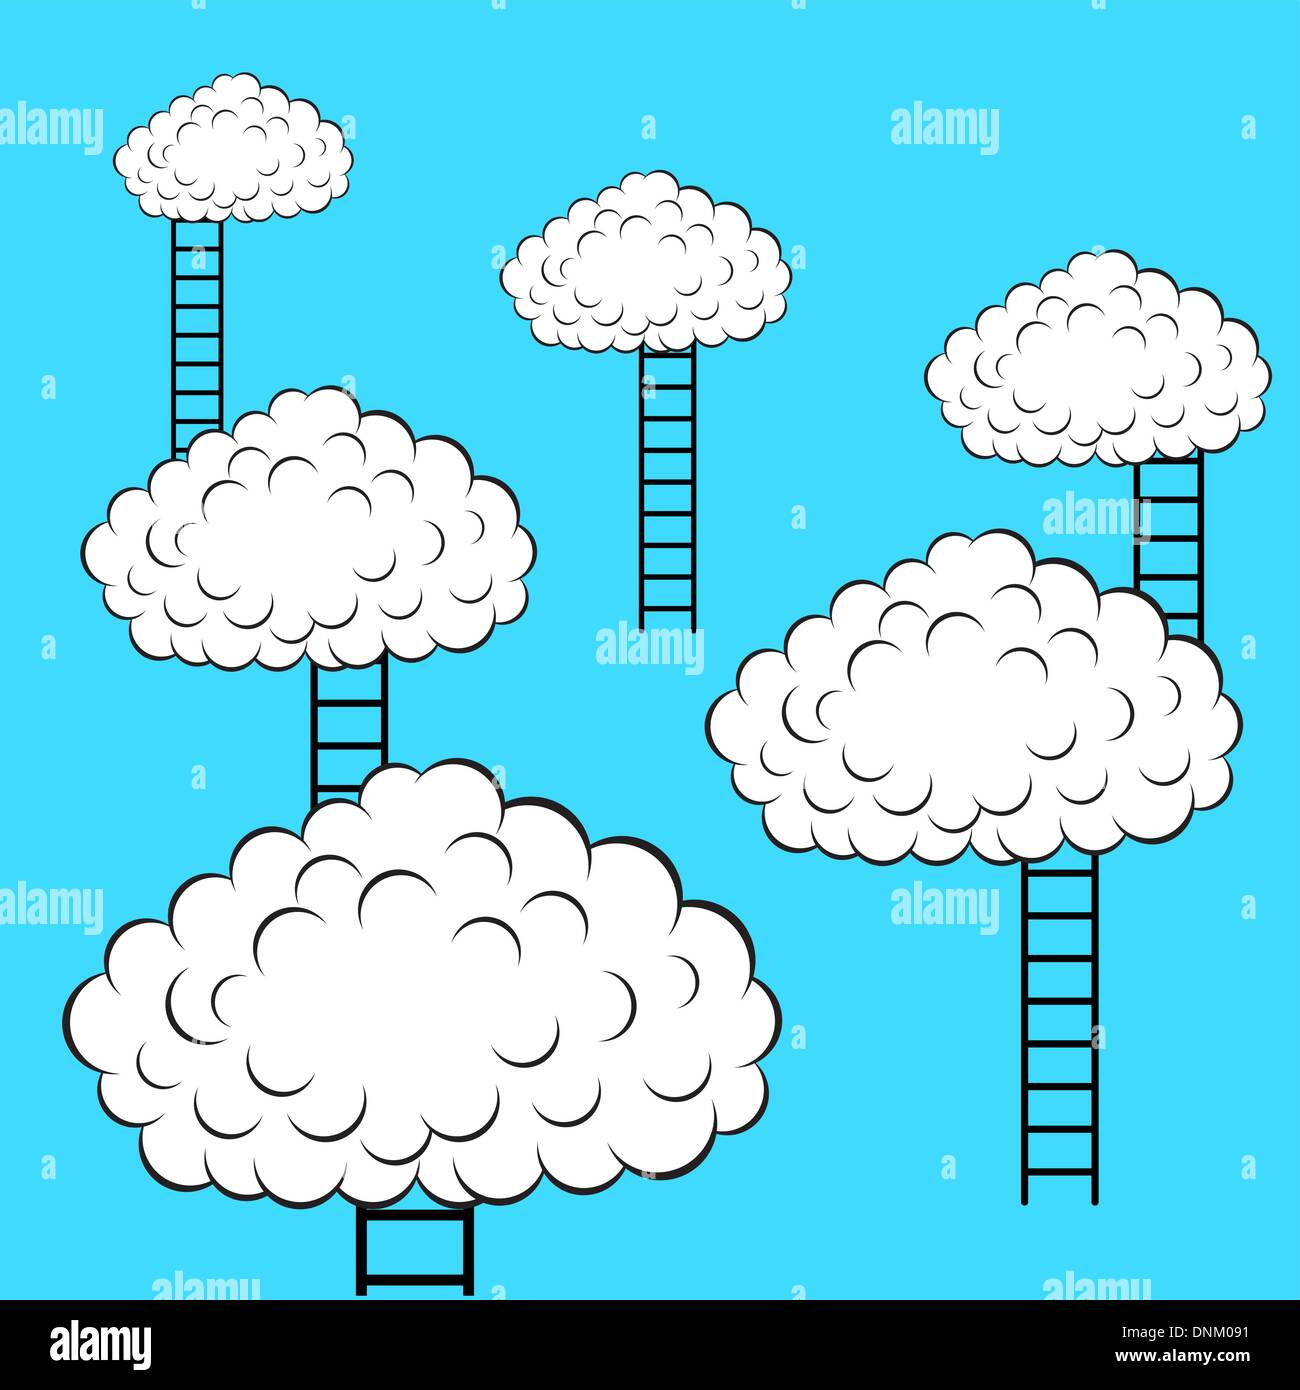 Wolken mit Treppen, Vektor-illustration Stock Vektor